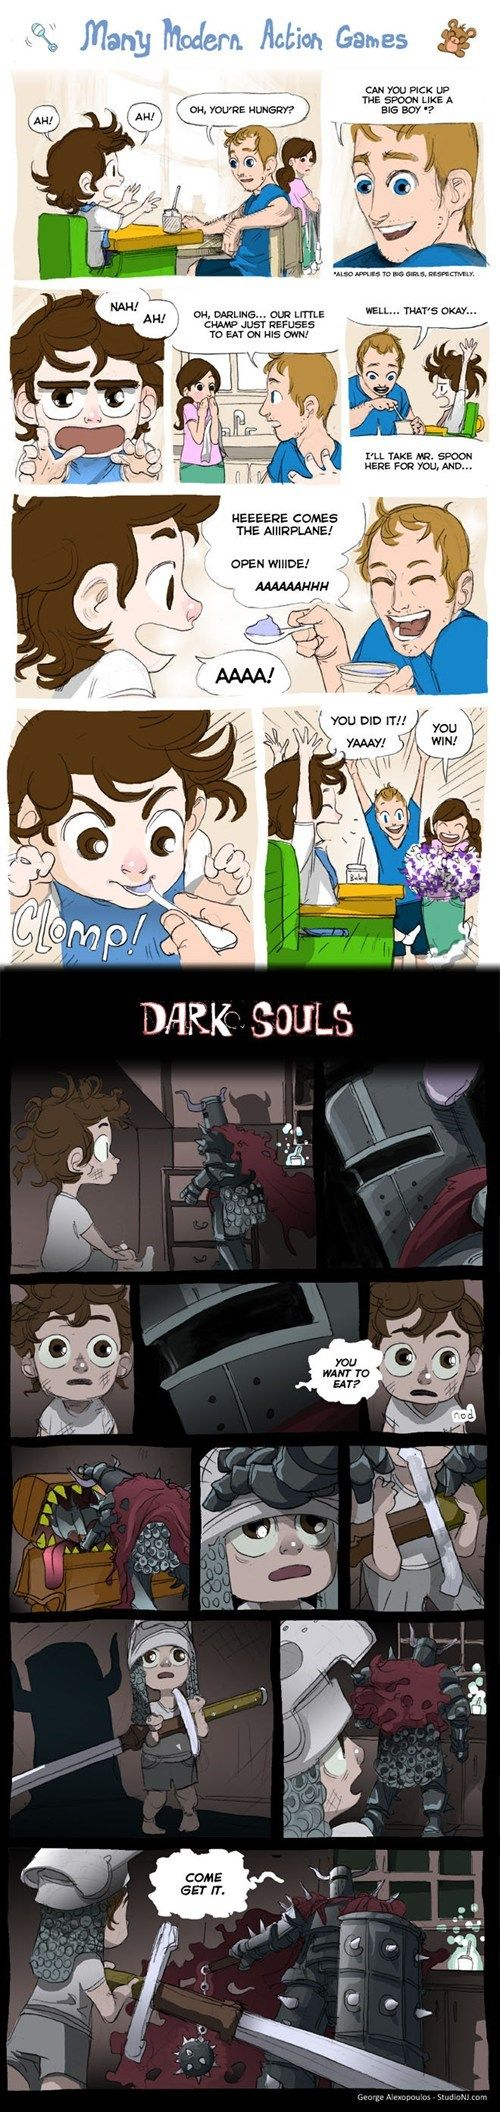 Why More Games Should Be Like Dark SoulsDarksouls, Videos Games, Funny Stuff, Finding Funny, Action Games, Funny Games, Dark Soul Funny, True Stories, Funny Memes